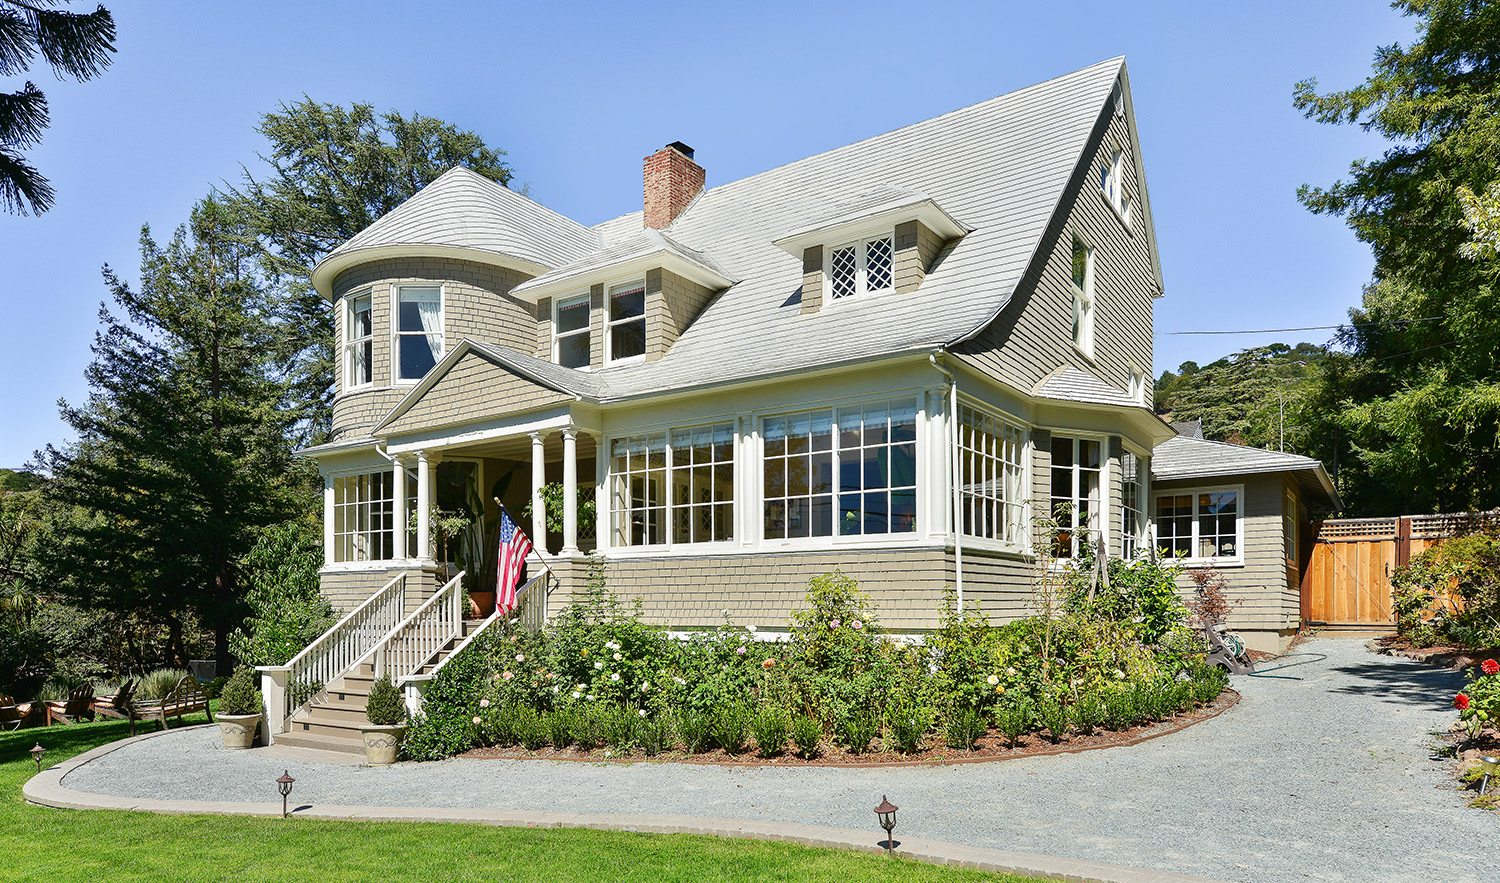 extraordinary home of the week historic queen anne victorian in co listed by monica pauli of coldwell banker residential brokerage in san francisco and susan hewitt of decker bullock sotheby s international realty